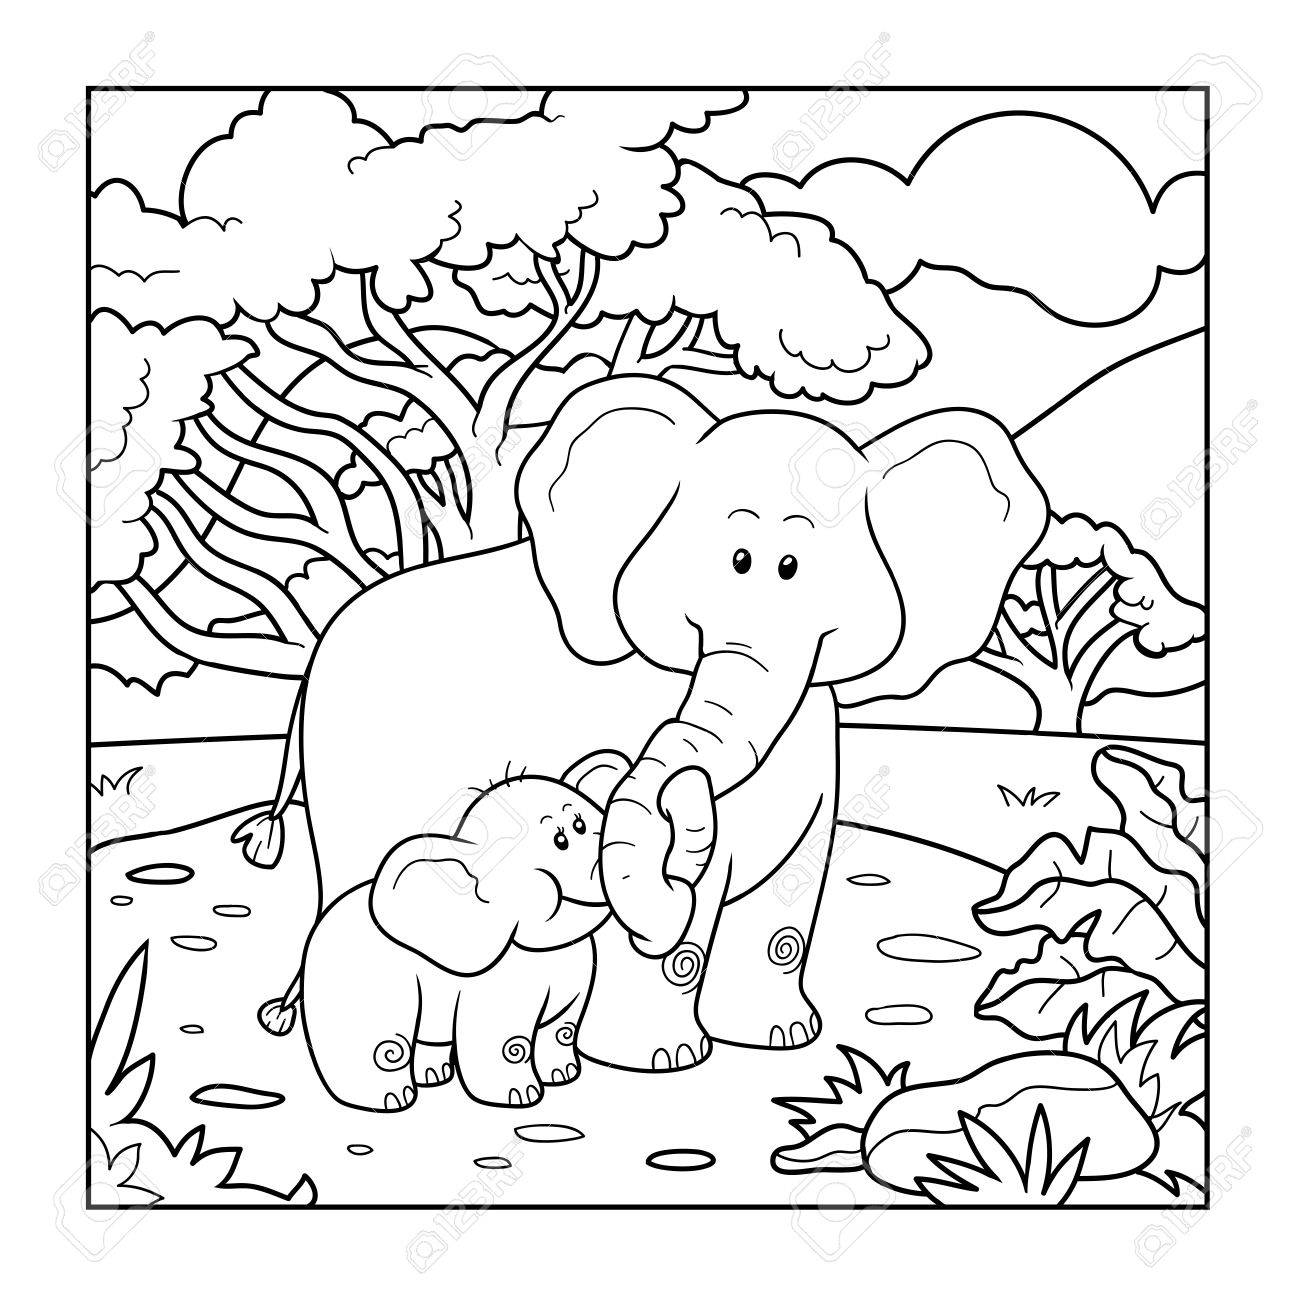 coloring book for children two elephants and background stock vector 49794165 - Children Coloring Book